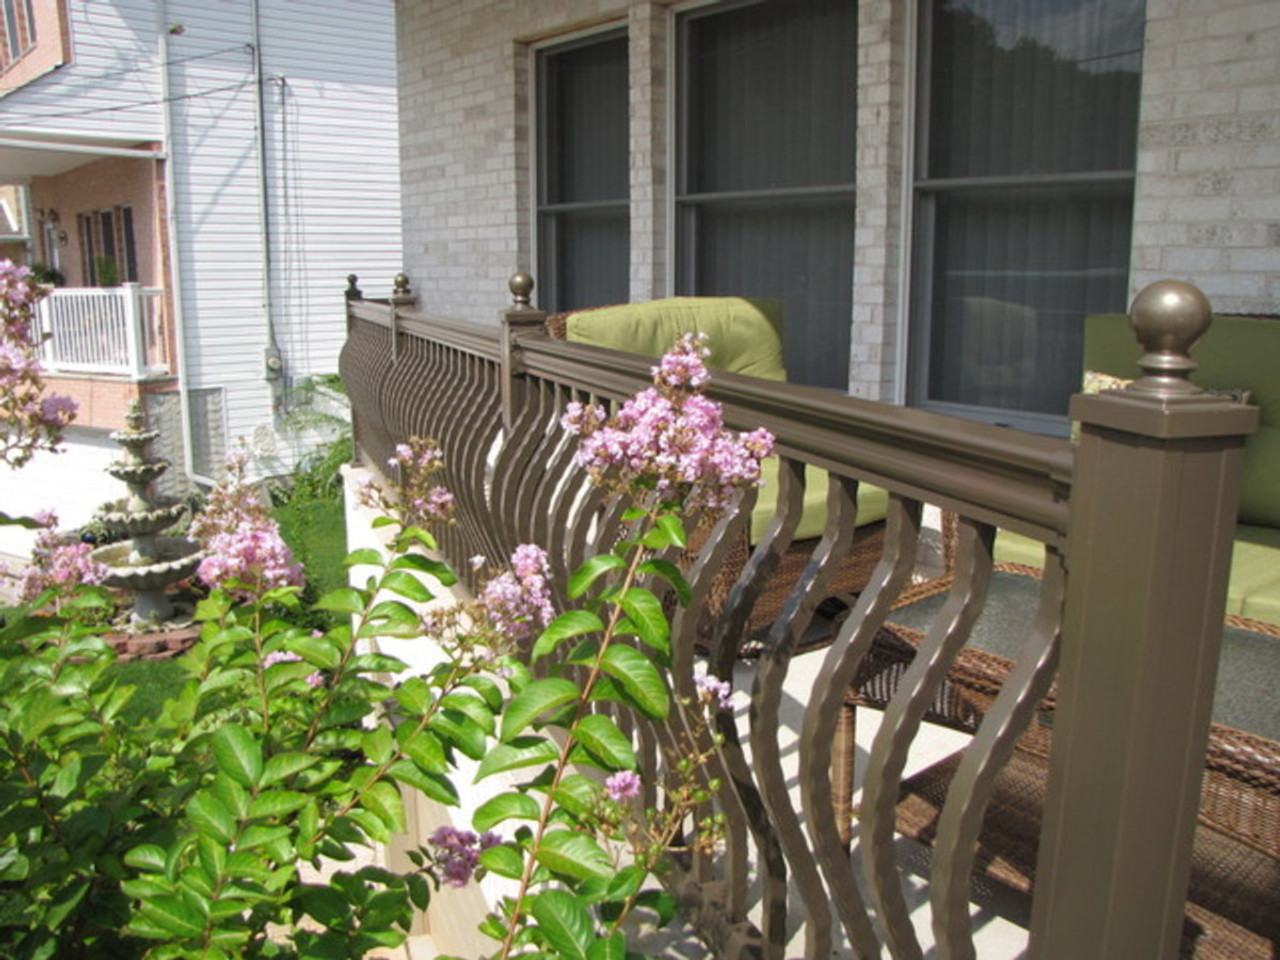 Key-Link Lancaster Series Aluminum Railing in Gloss Bronze with Hammered Bowed Balusters